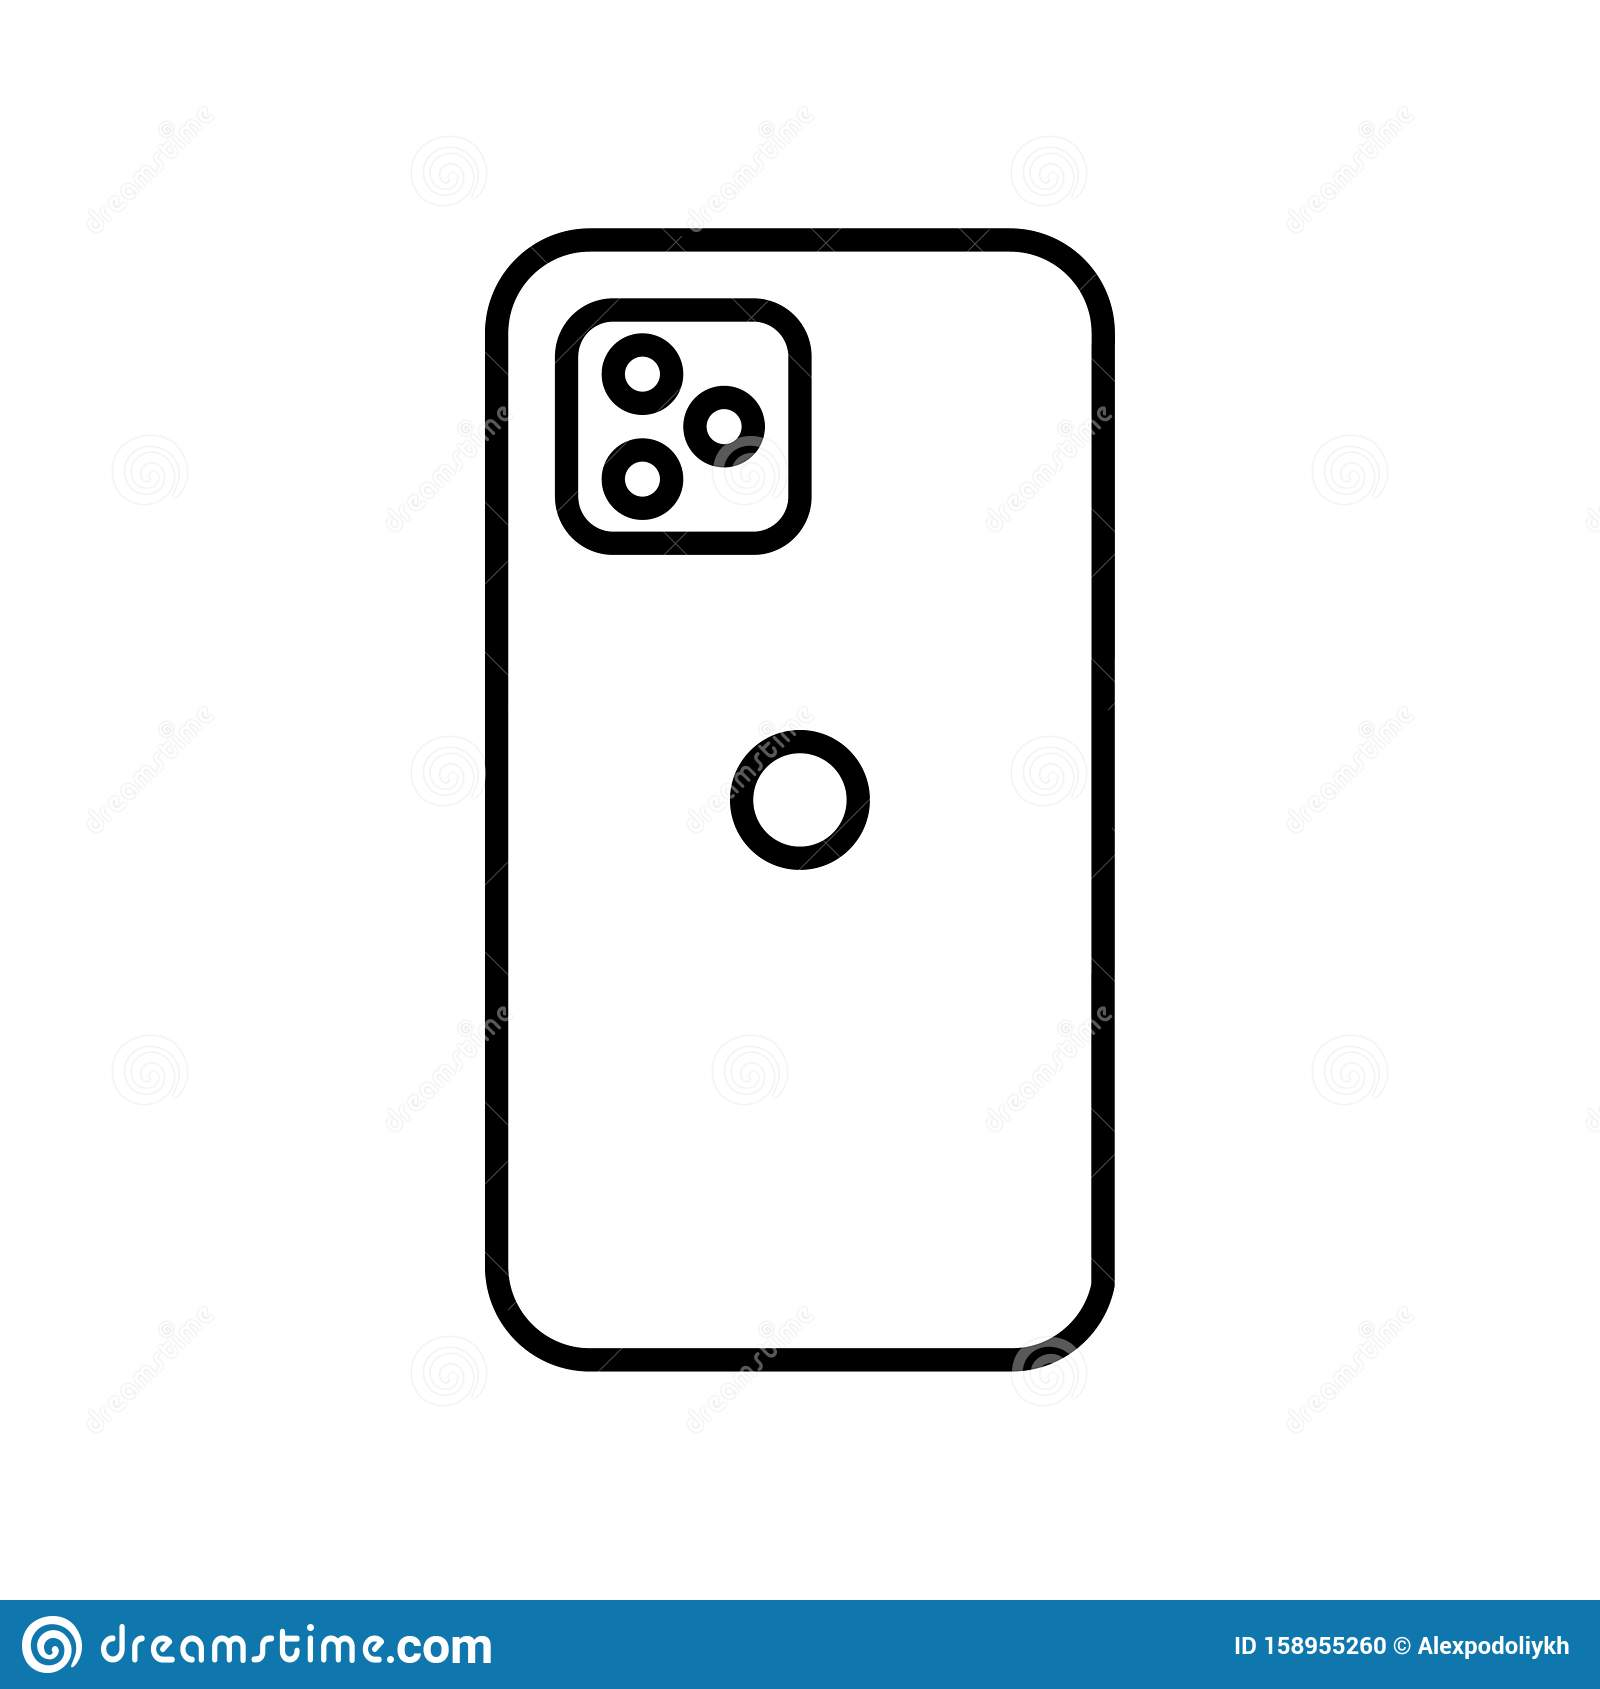 New Iphone 11 Pro Max Line Icon Smartphone Vector Graphic Illustration Isolated On White Background Material Design Ui Ux Editorial Image Illustration Of Black Line 158955260